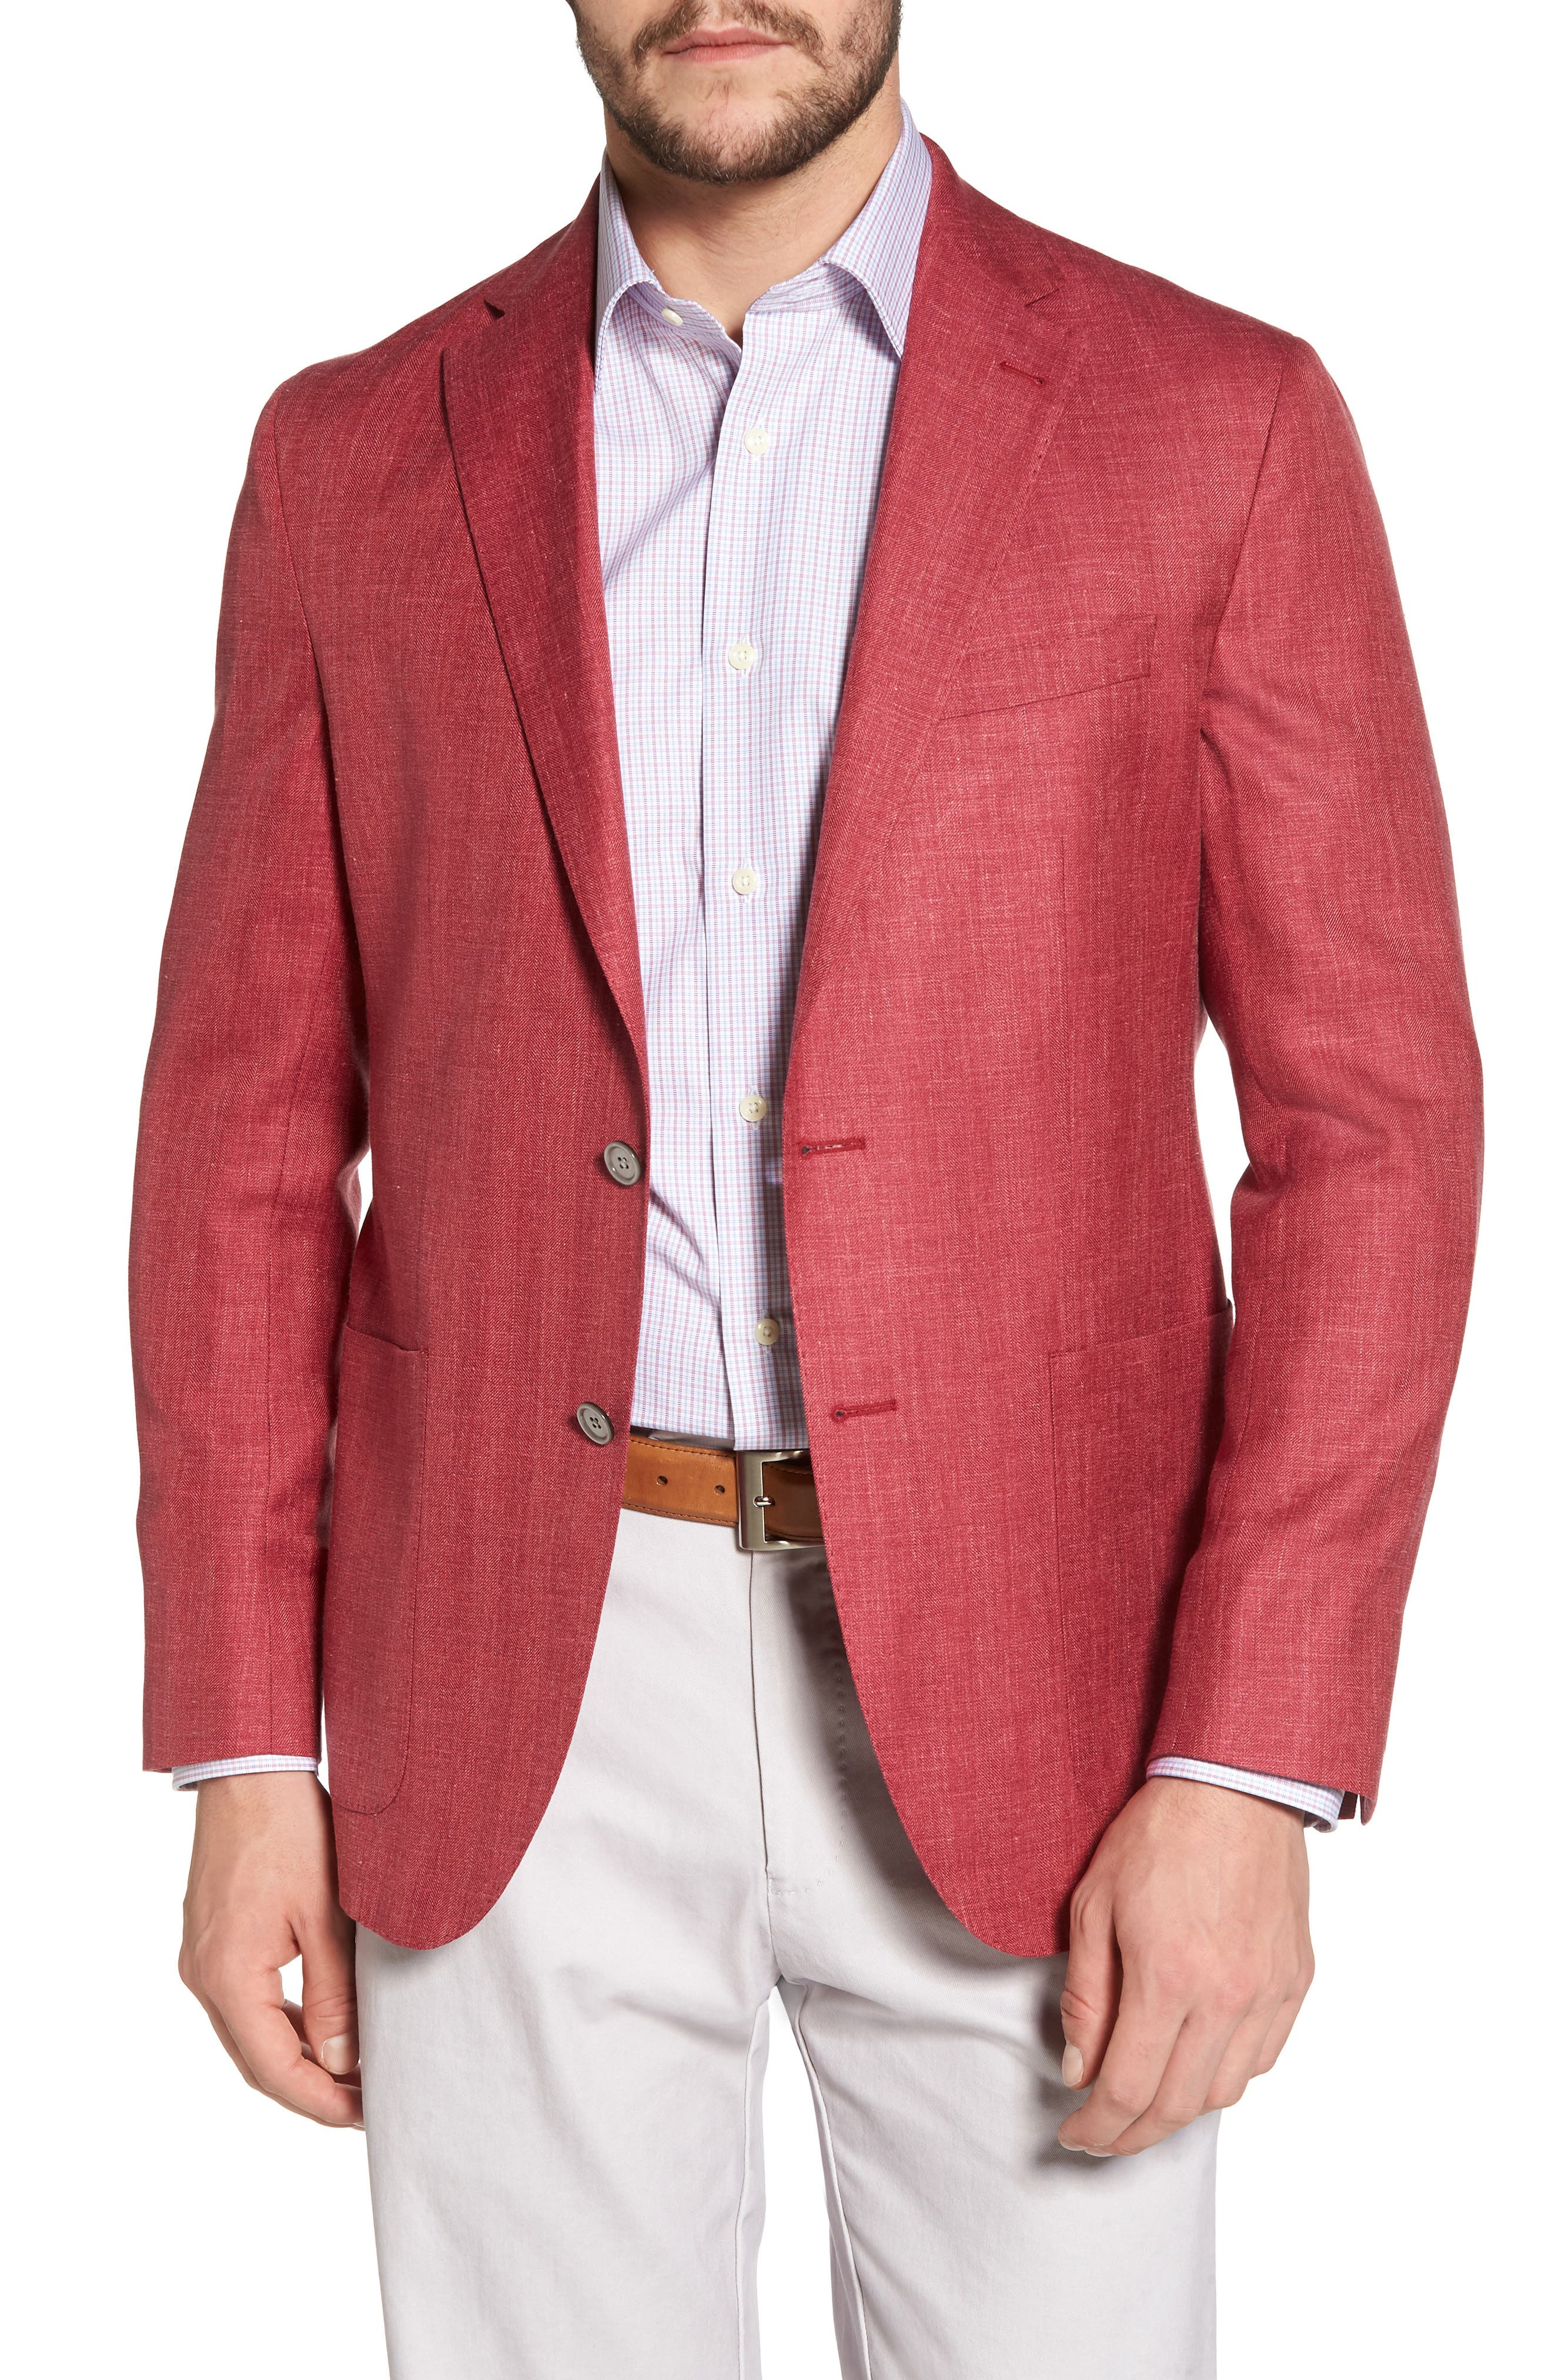 Aiden Classic Fit Wool Blend Blazer,                             Main thumbnail 1, color,                             Red